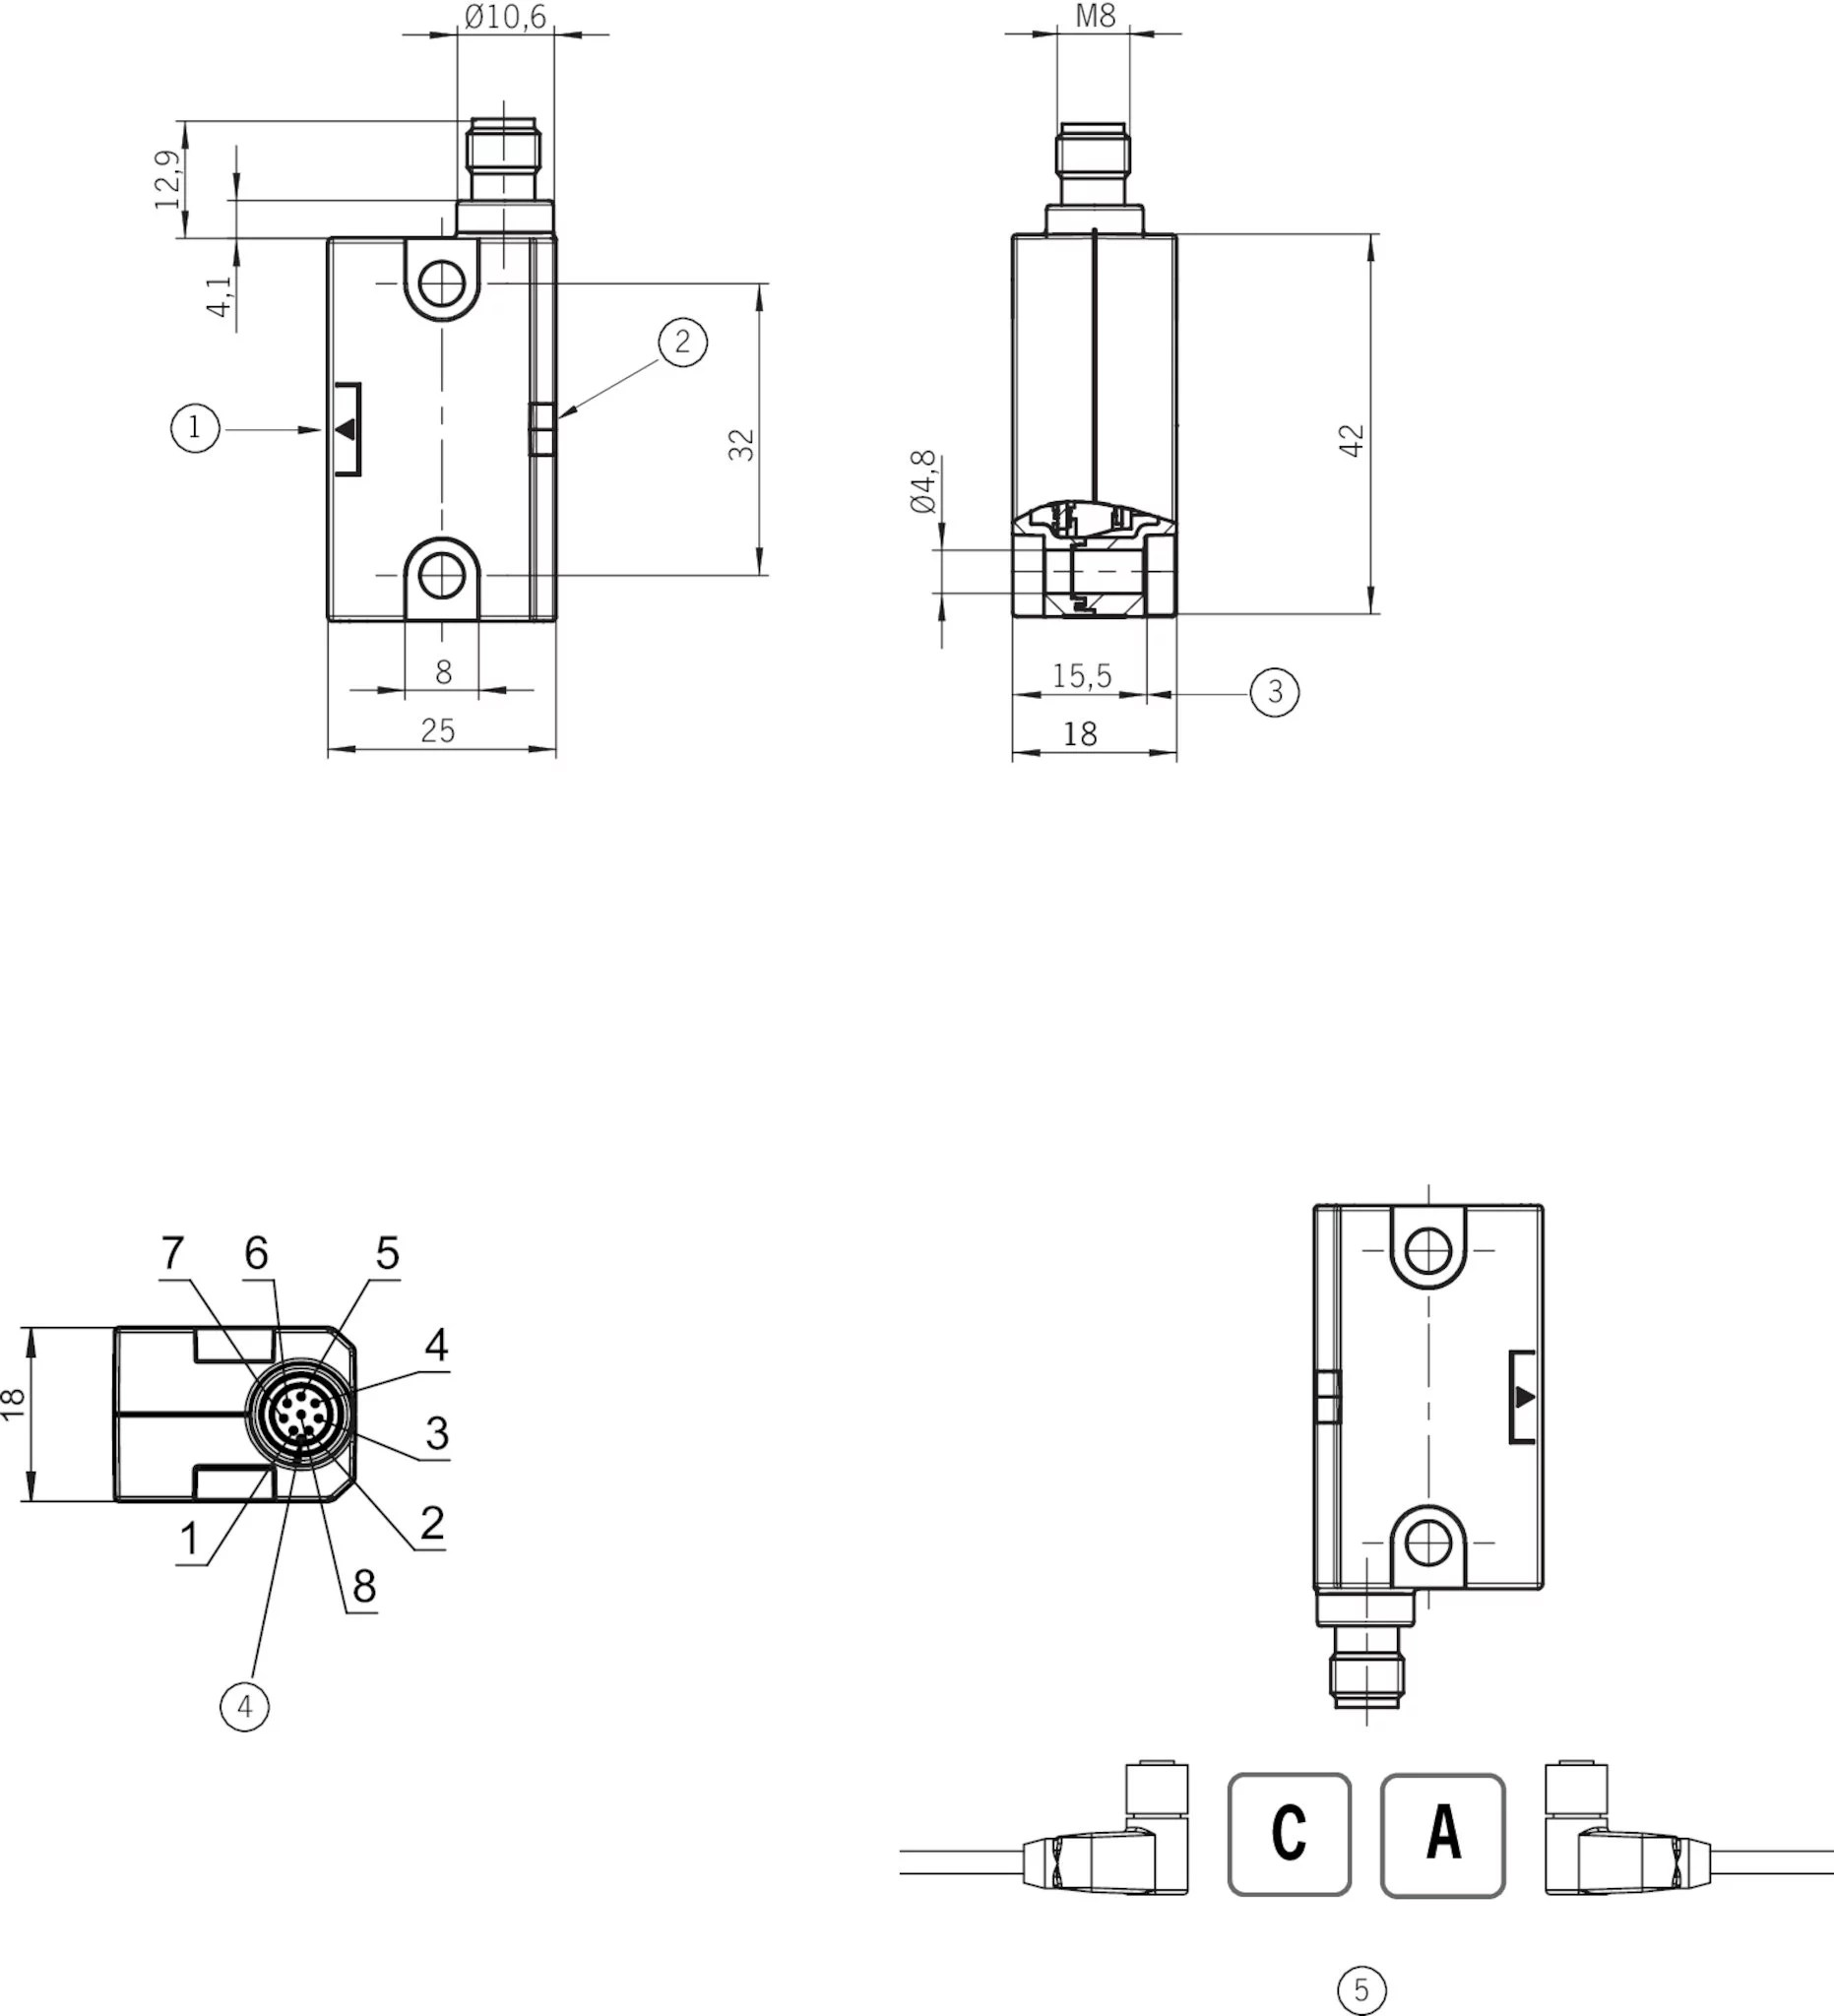 CES-I-AR-M-C04-SG-119474 Non-contact safety switches CES-I